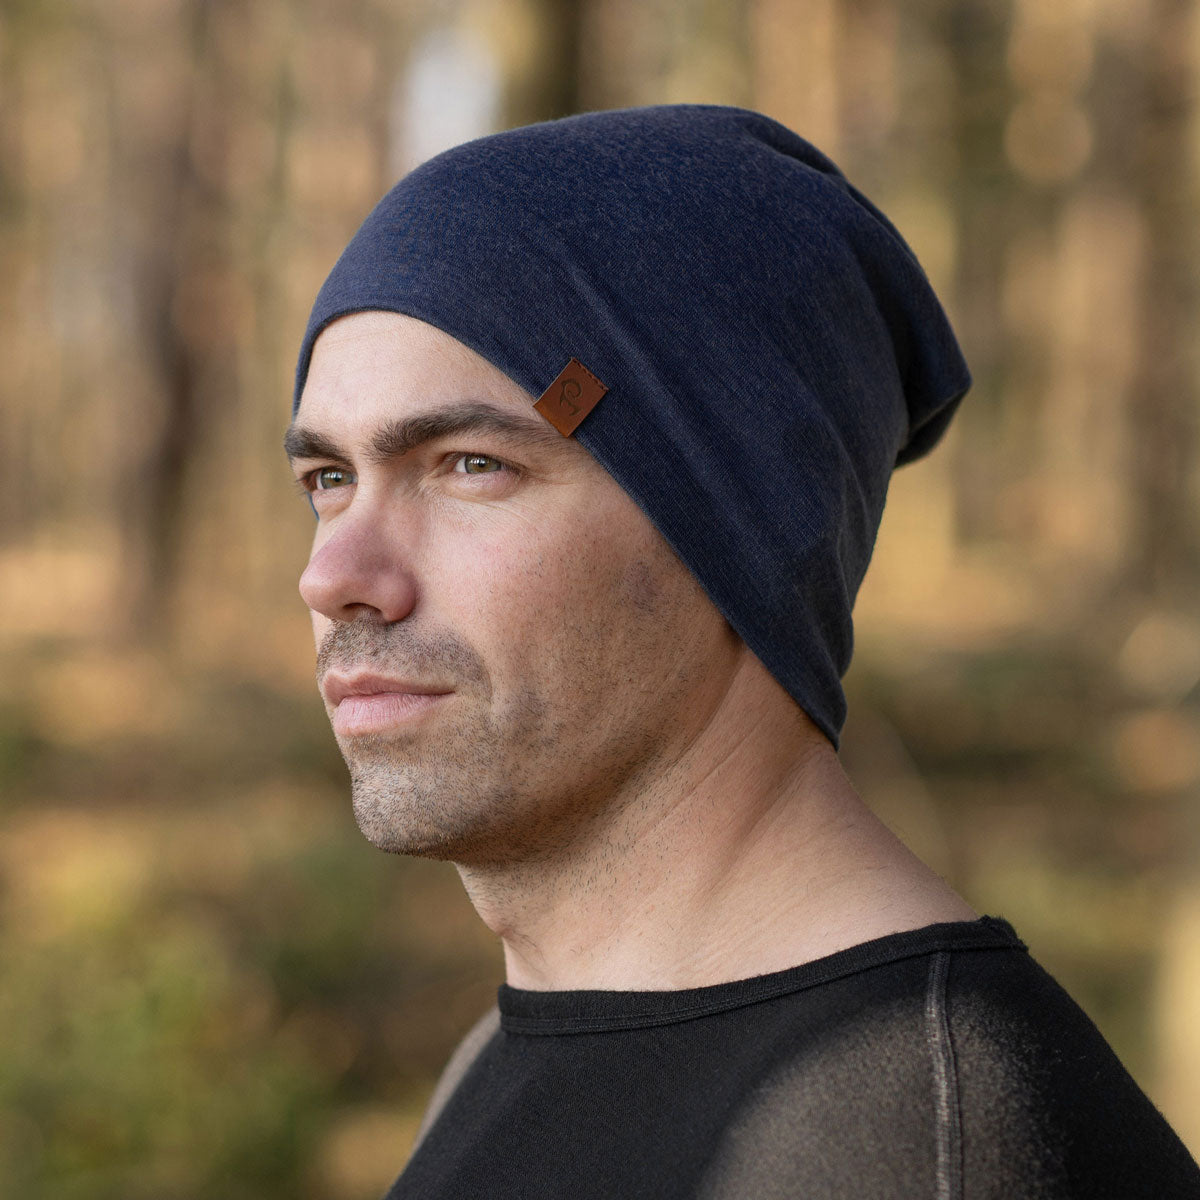 menique men's merino wool beanie hat dark blue